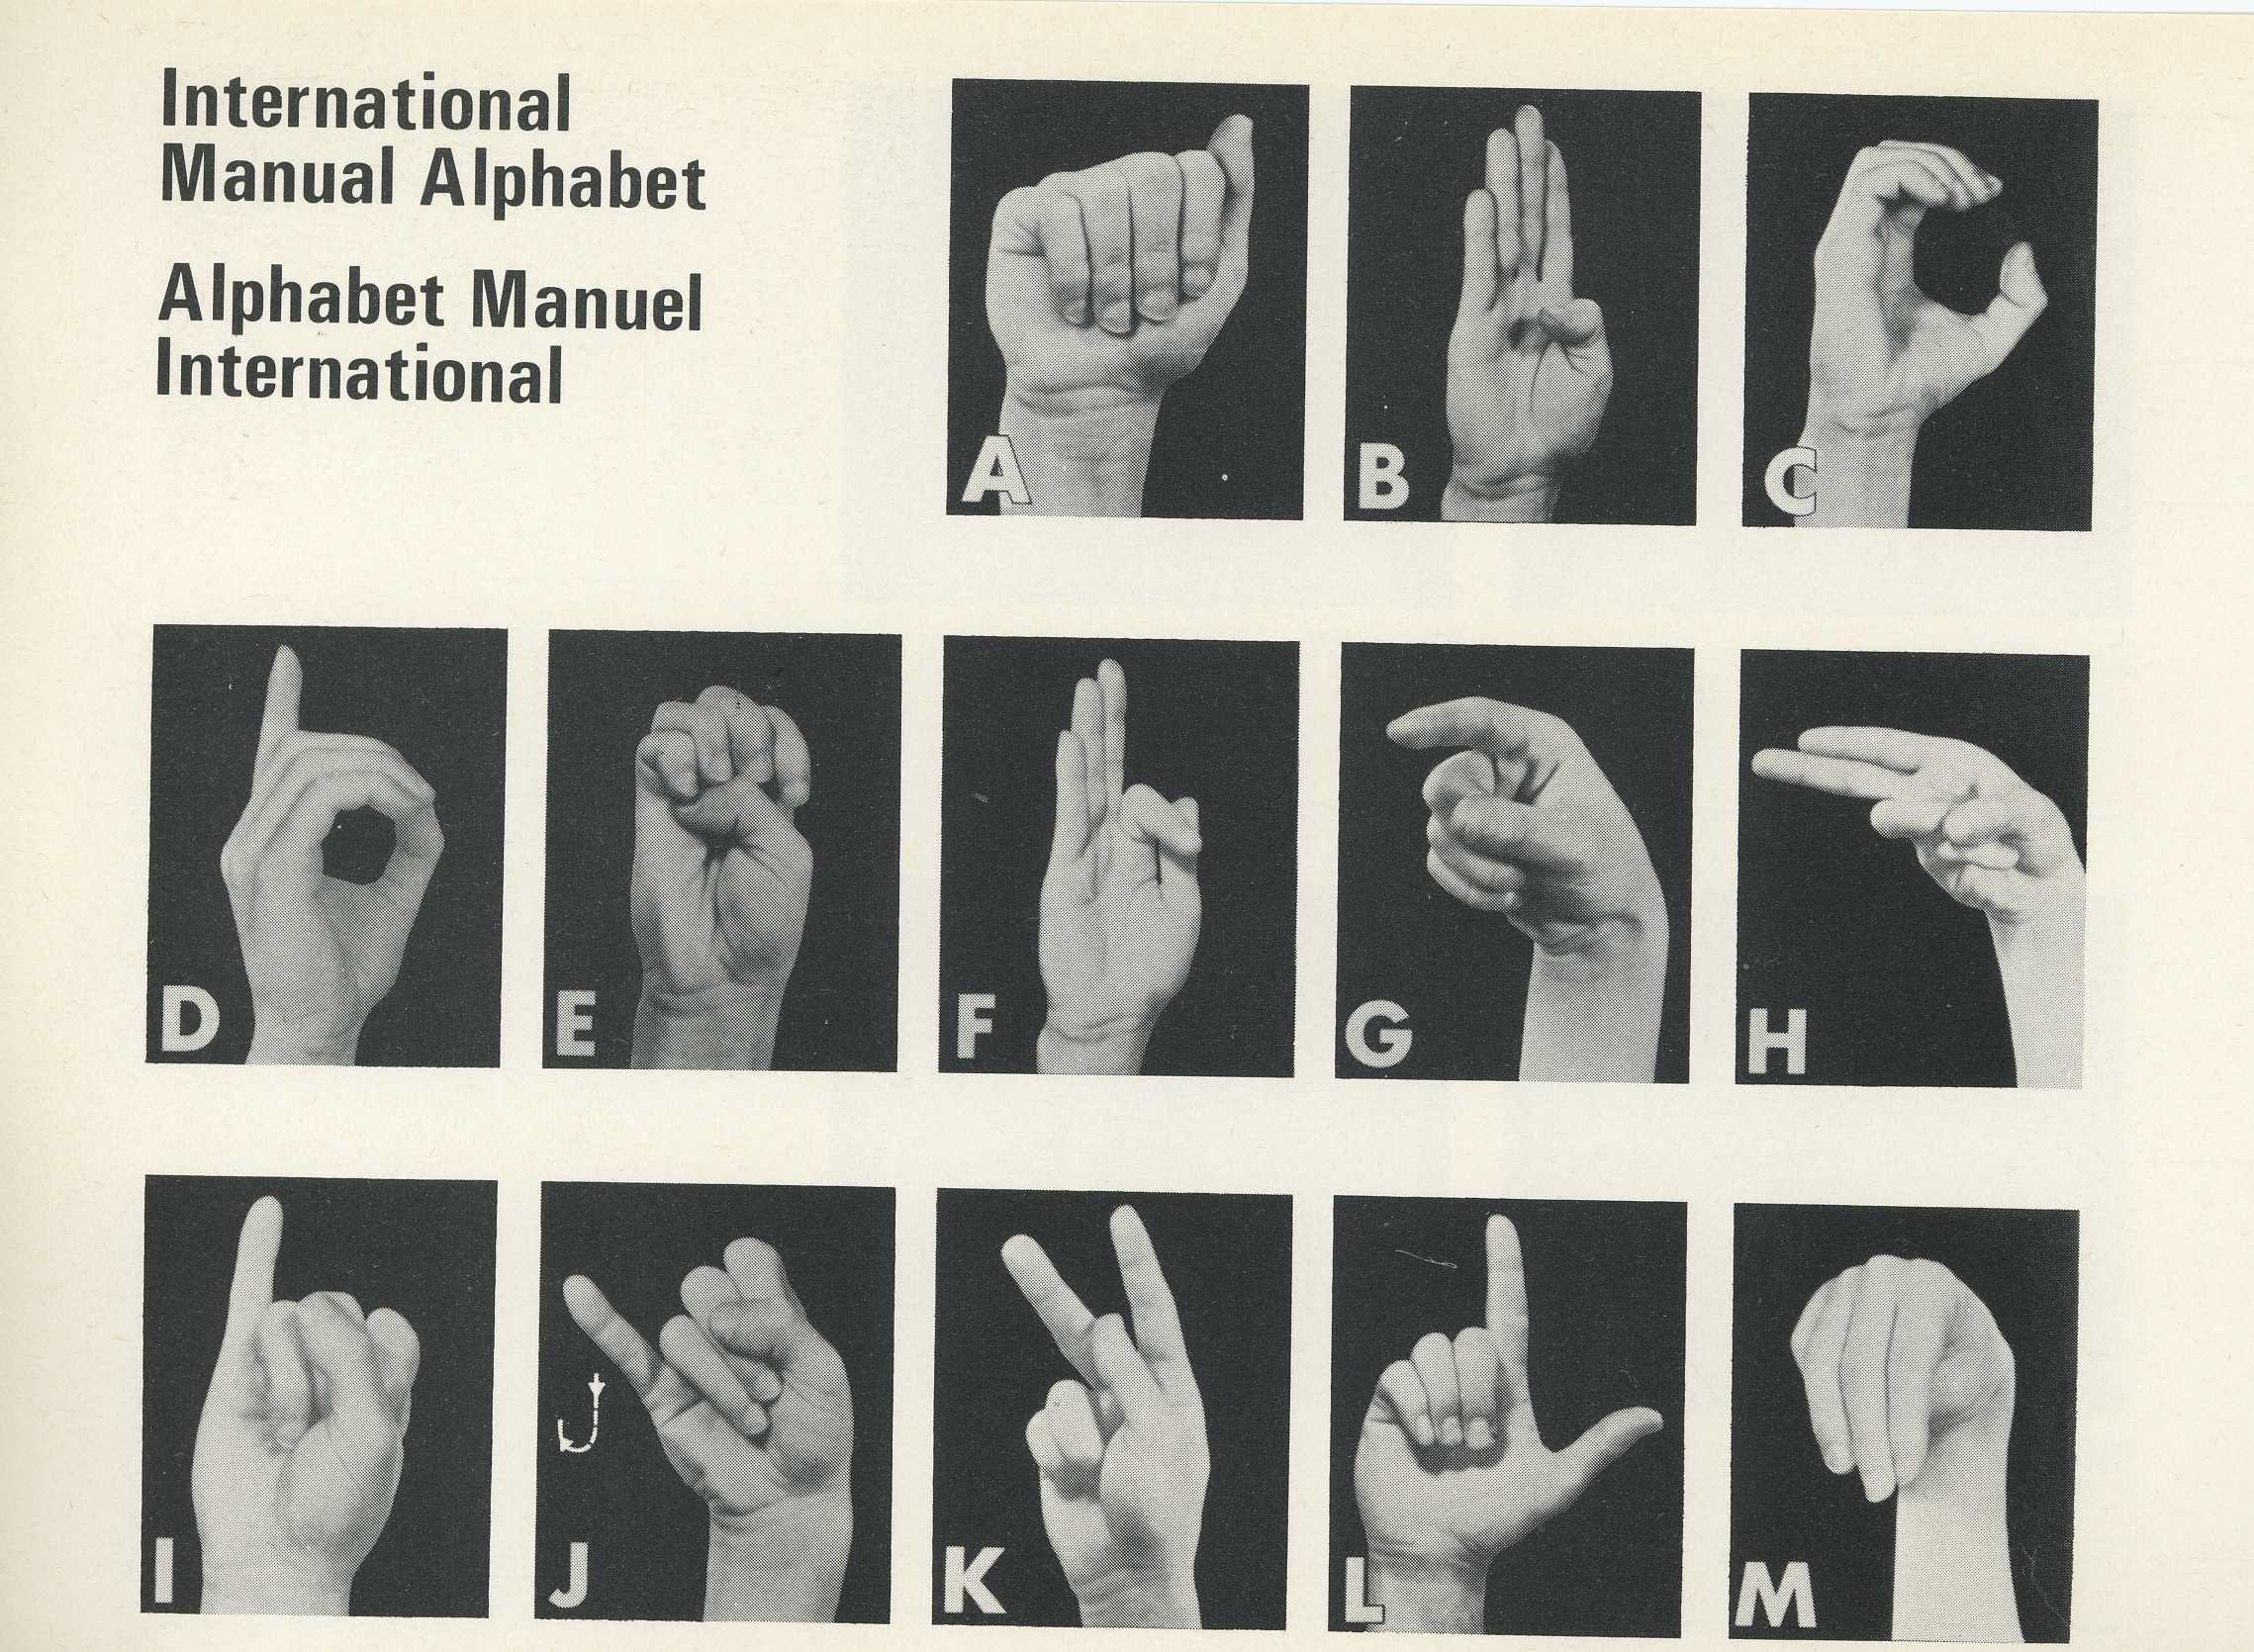 Intl Manual  Alphabet001.jpg